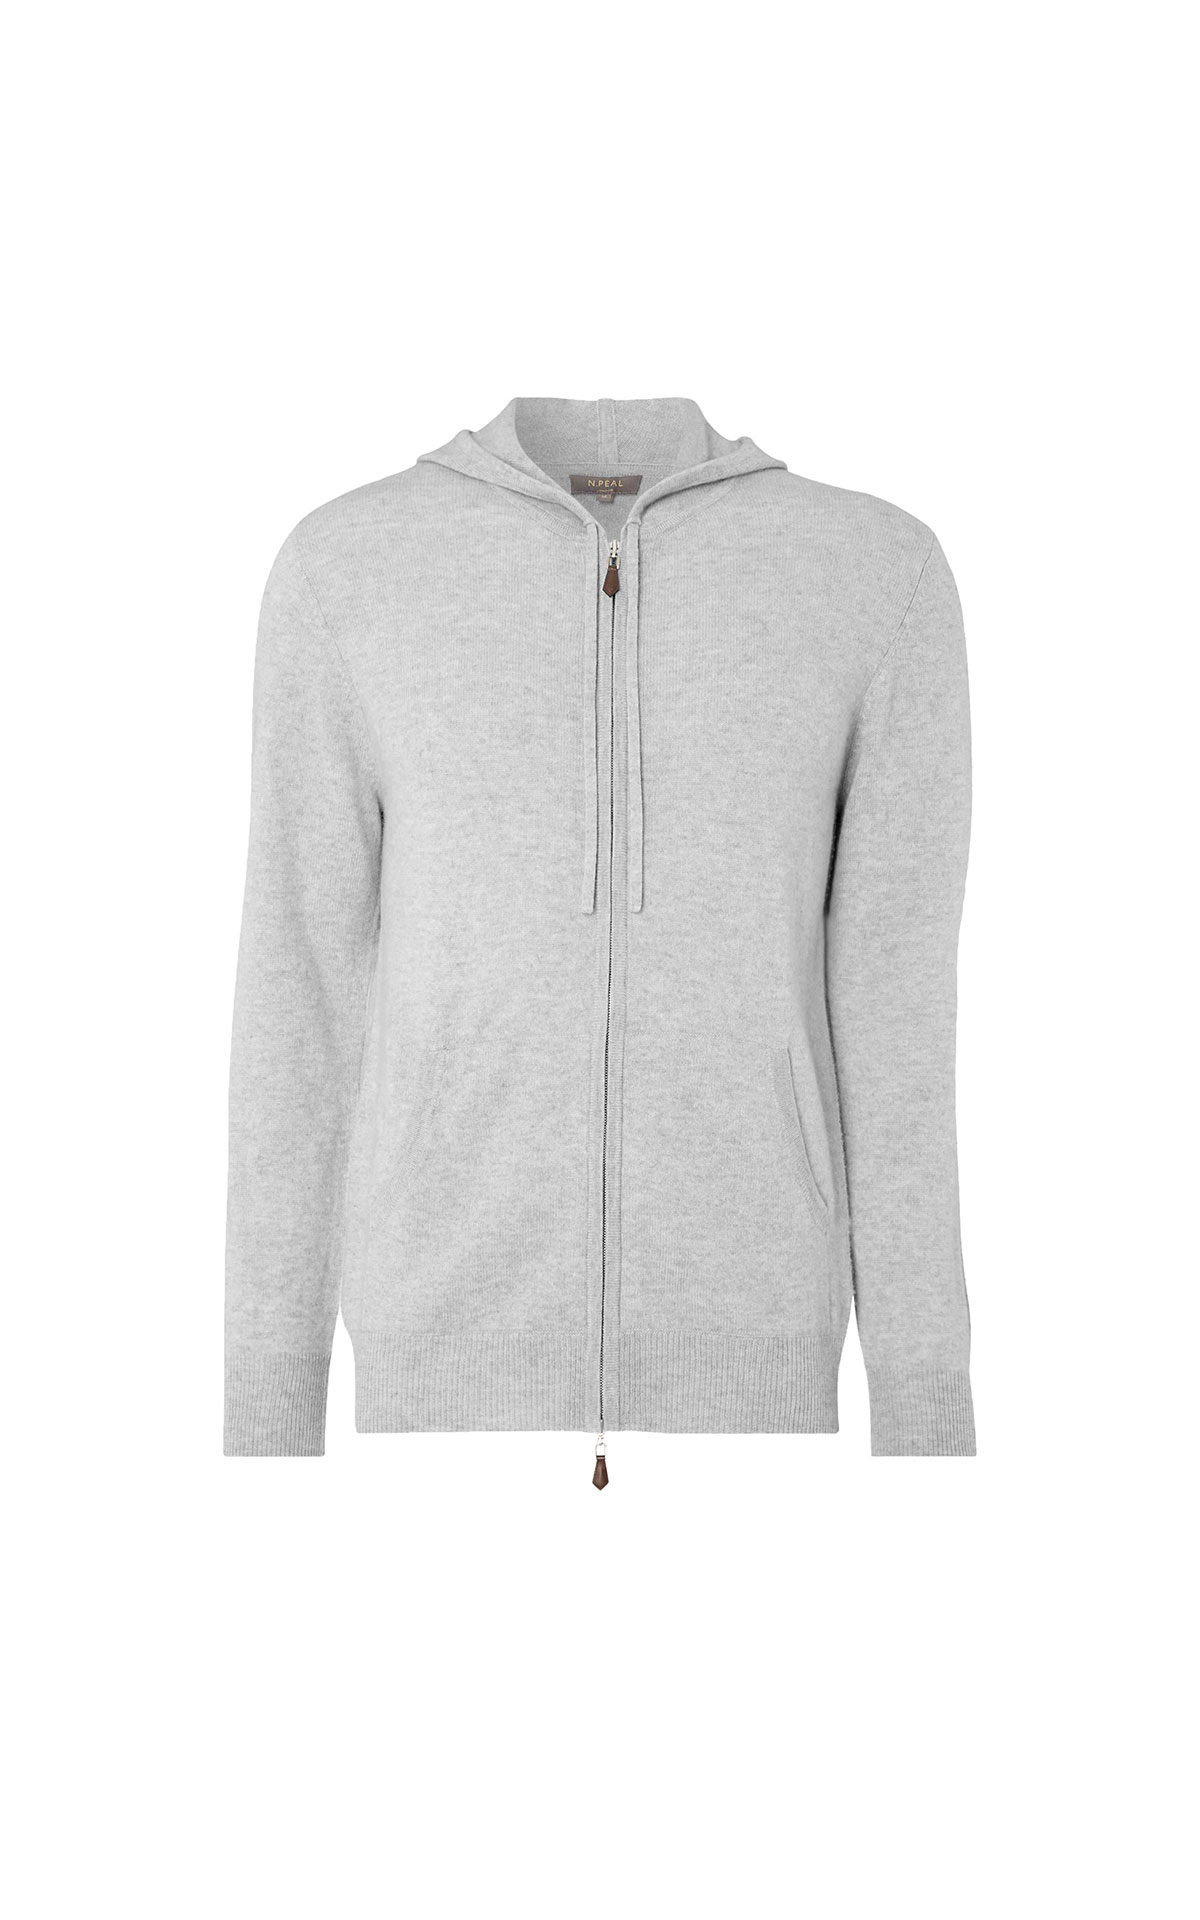 N.Peal Men's zip hoody  from Bicester Village